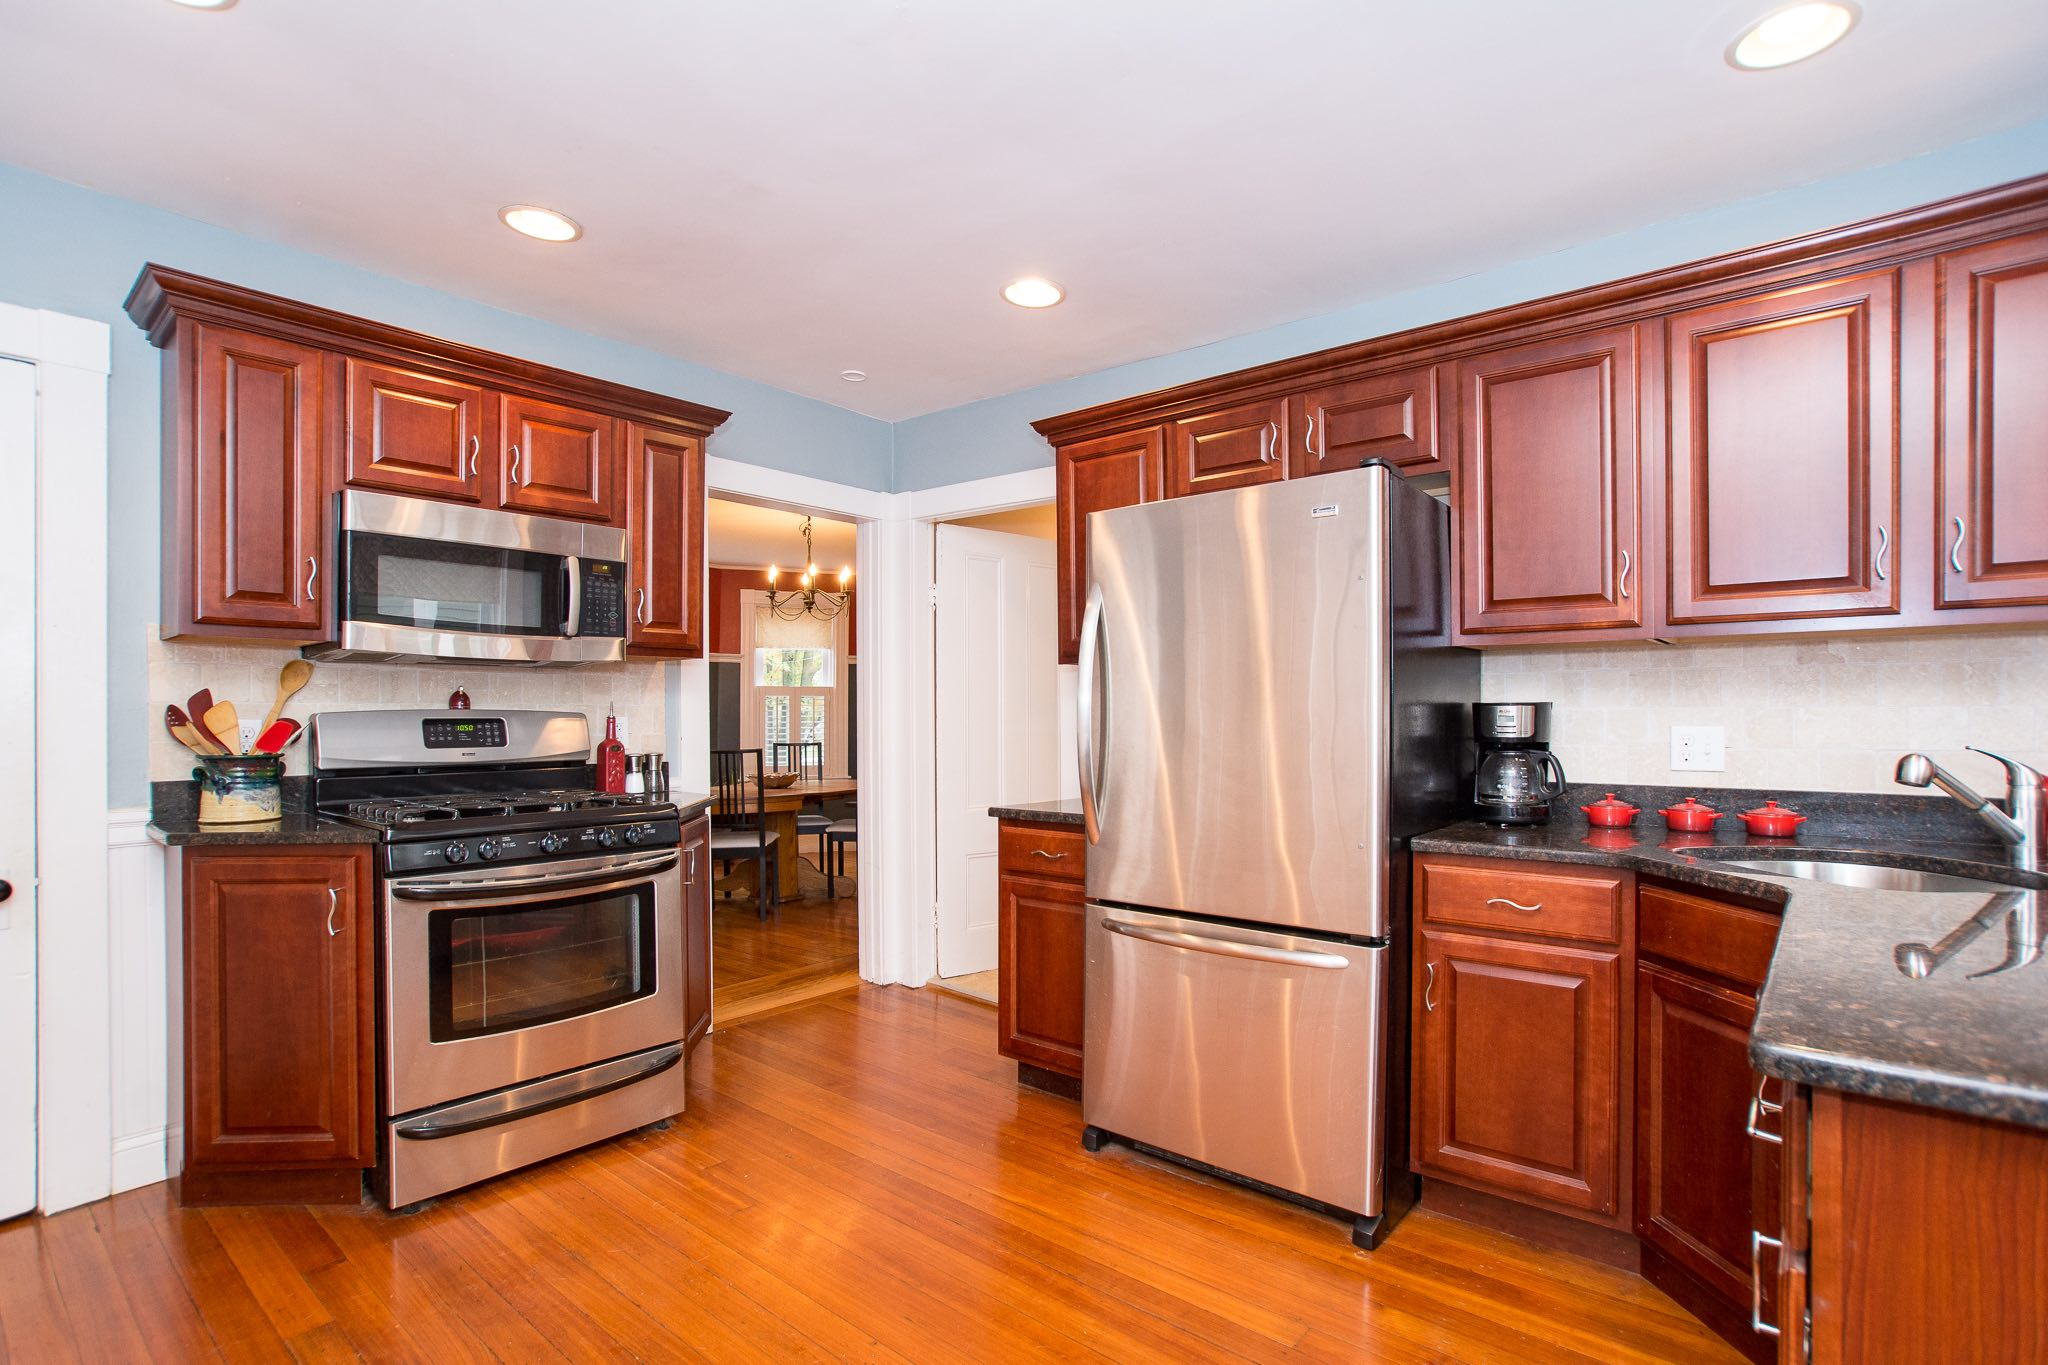 48 Eddy Street, Newton, MA - Kitchen